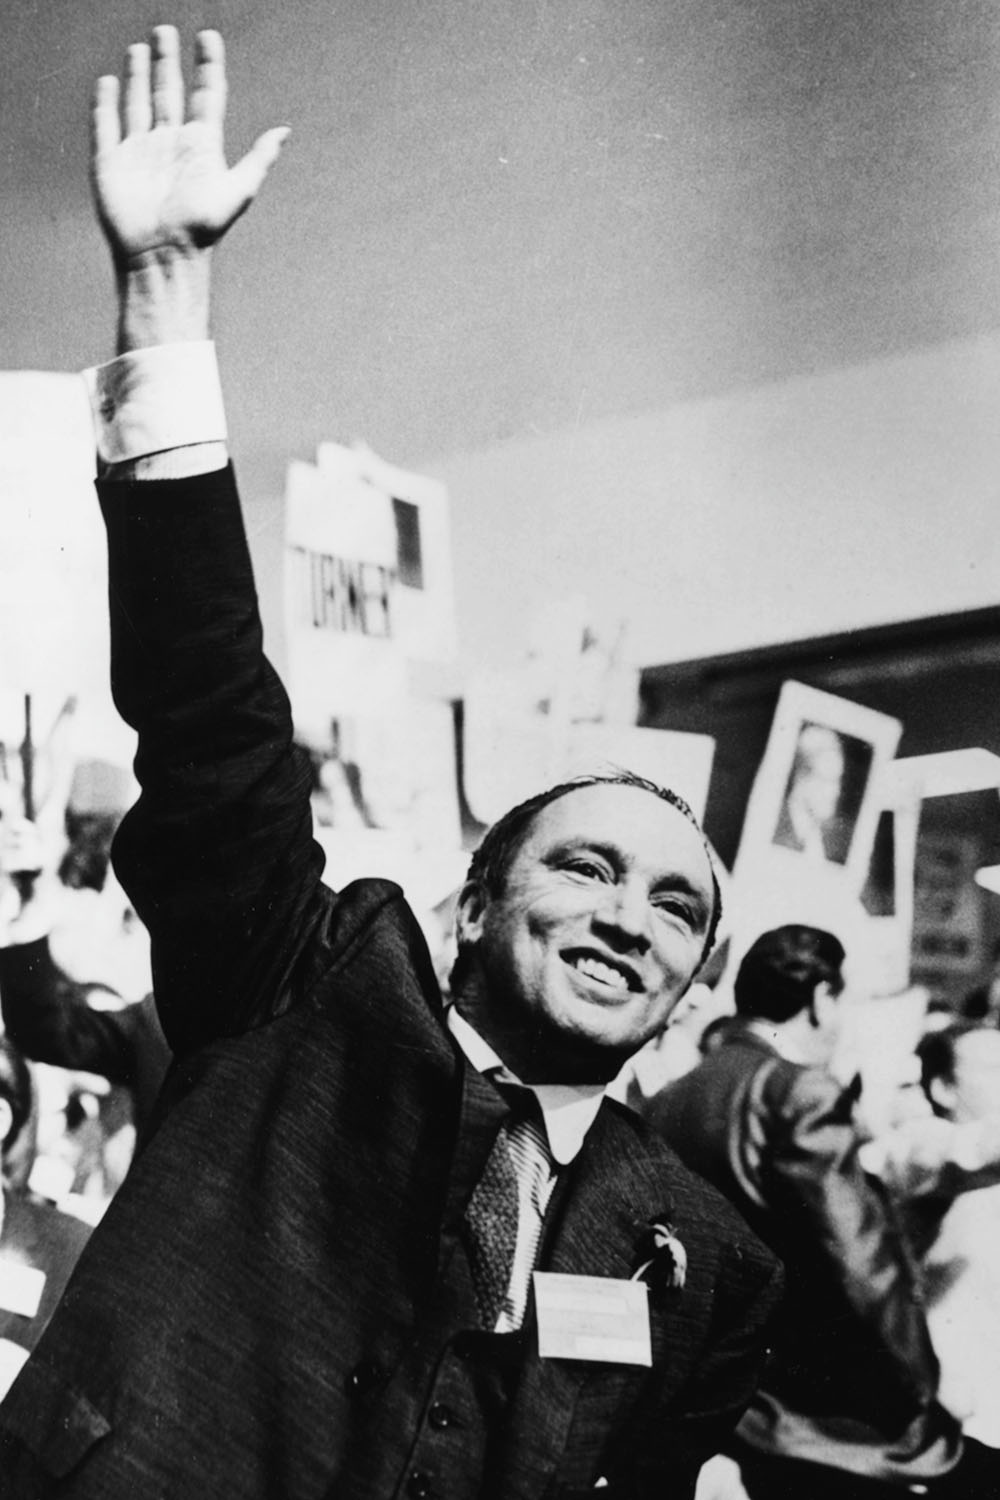 Canadian Prime Minister Pierre Trudeau raising his arm in celebration, circa 1968. (Keystone/Hulton Archive/Getty Images)